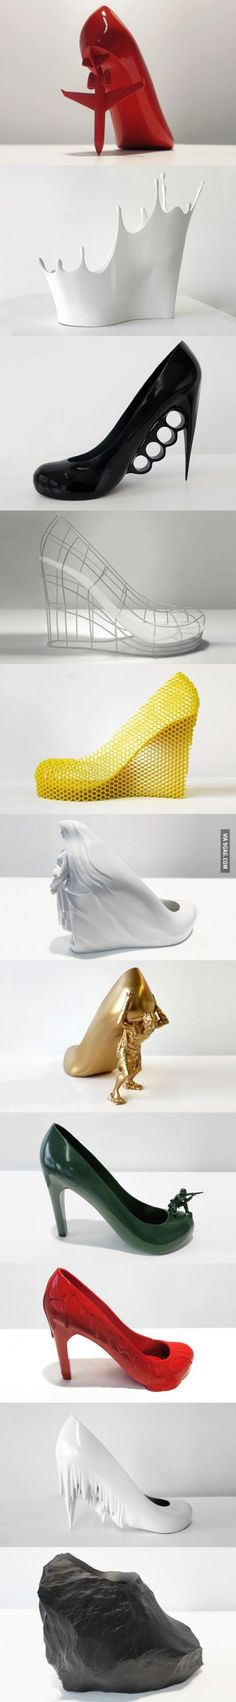 Awesome and kind of weird shoes. But fun and unique! For Halloween..?